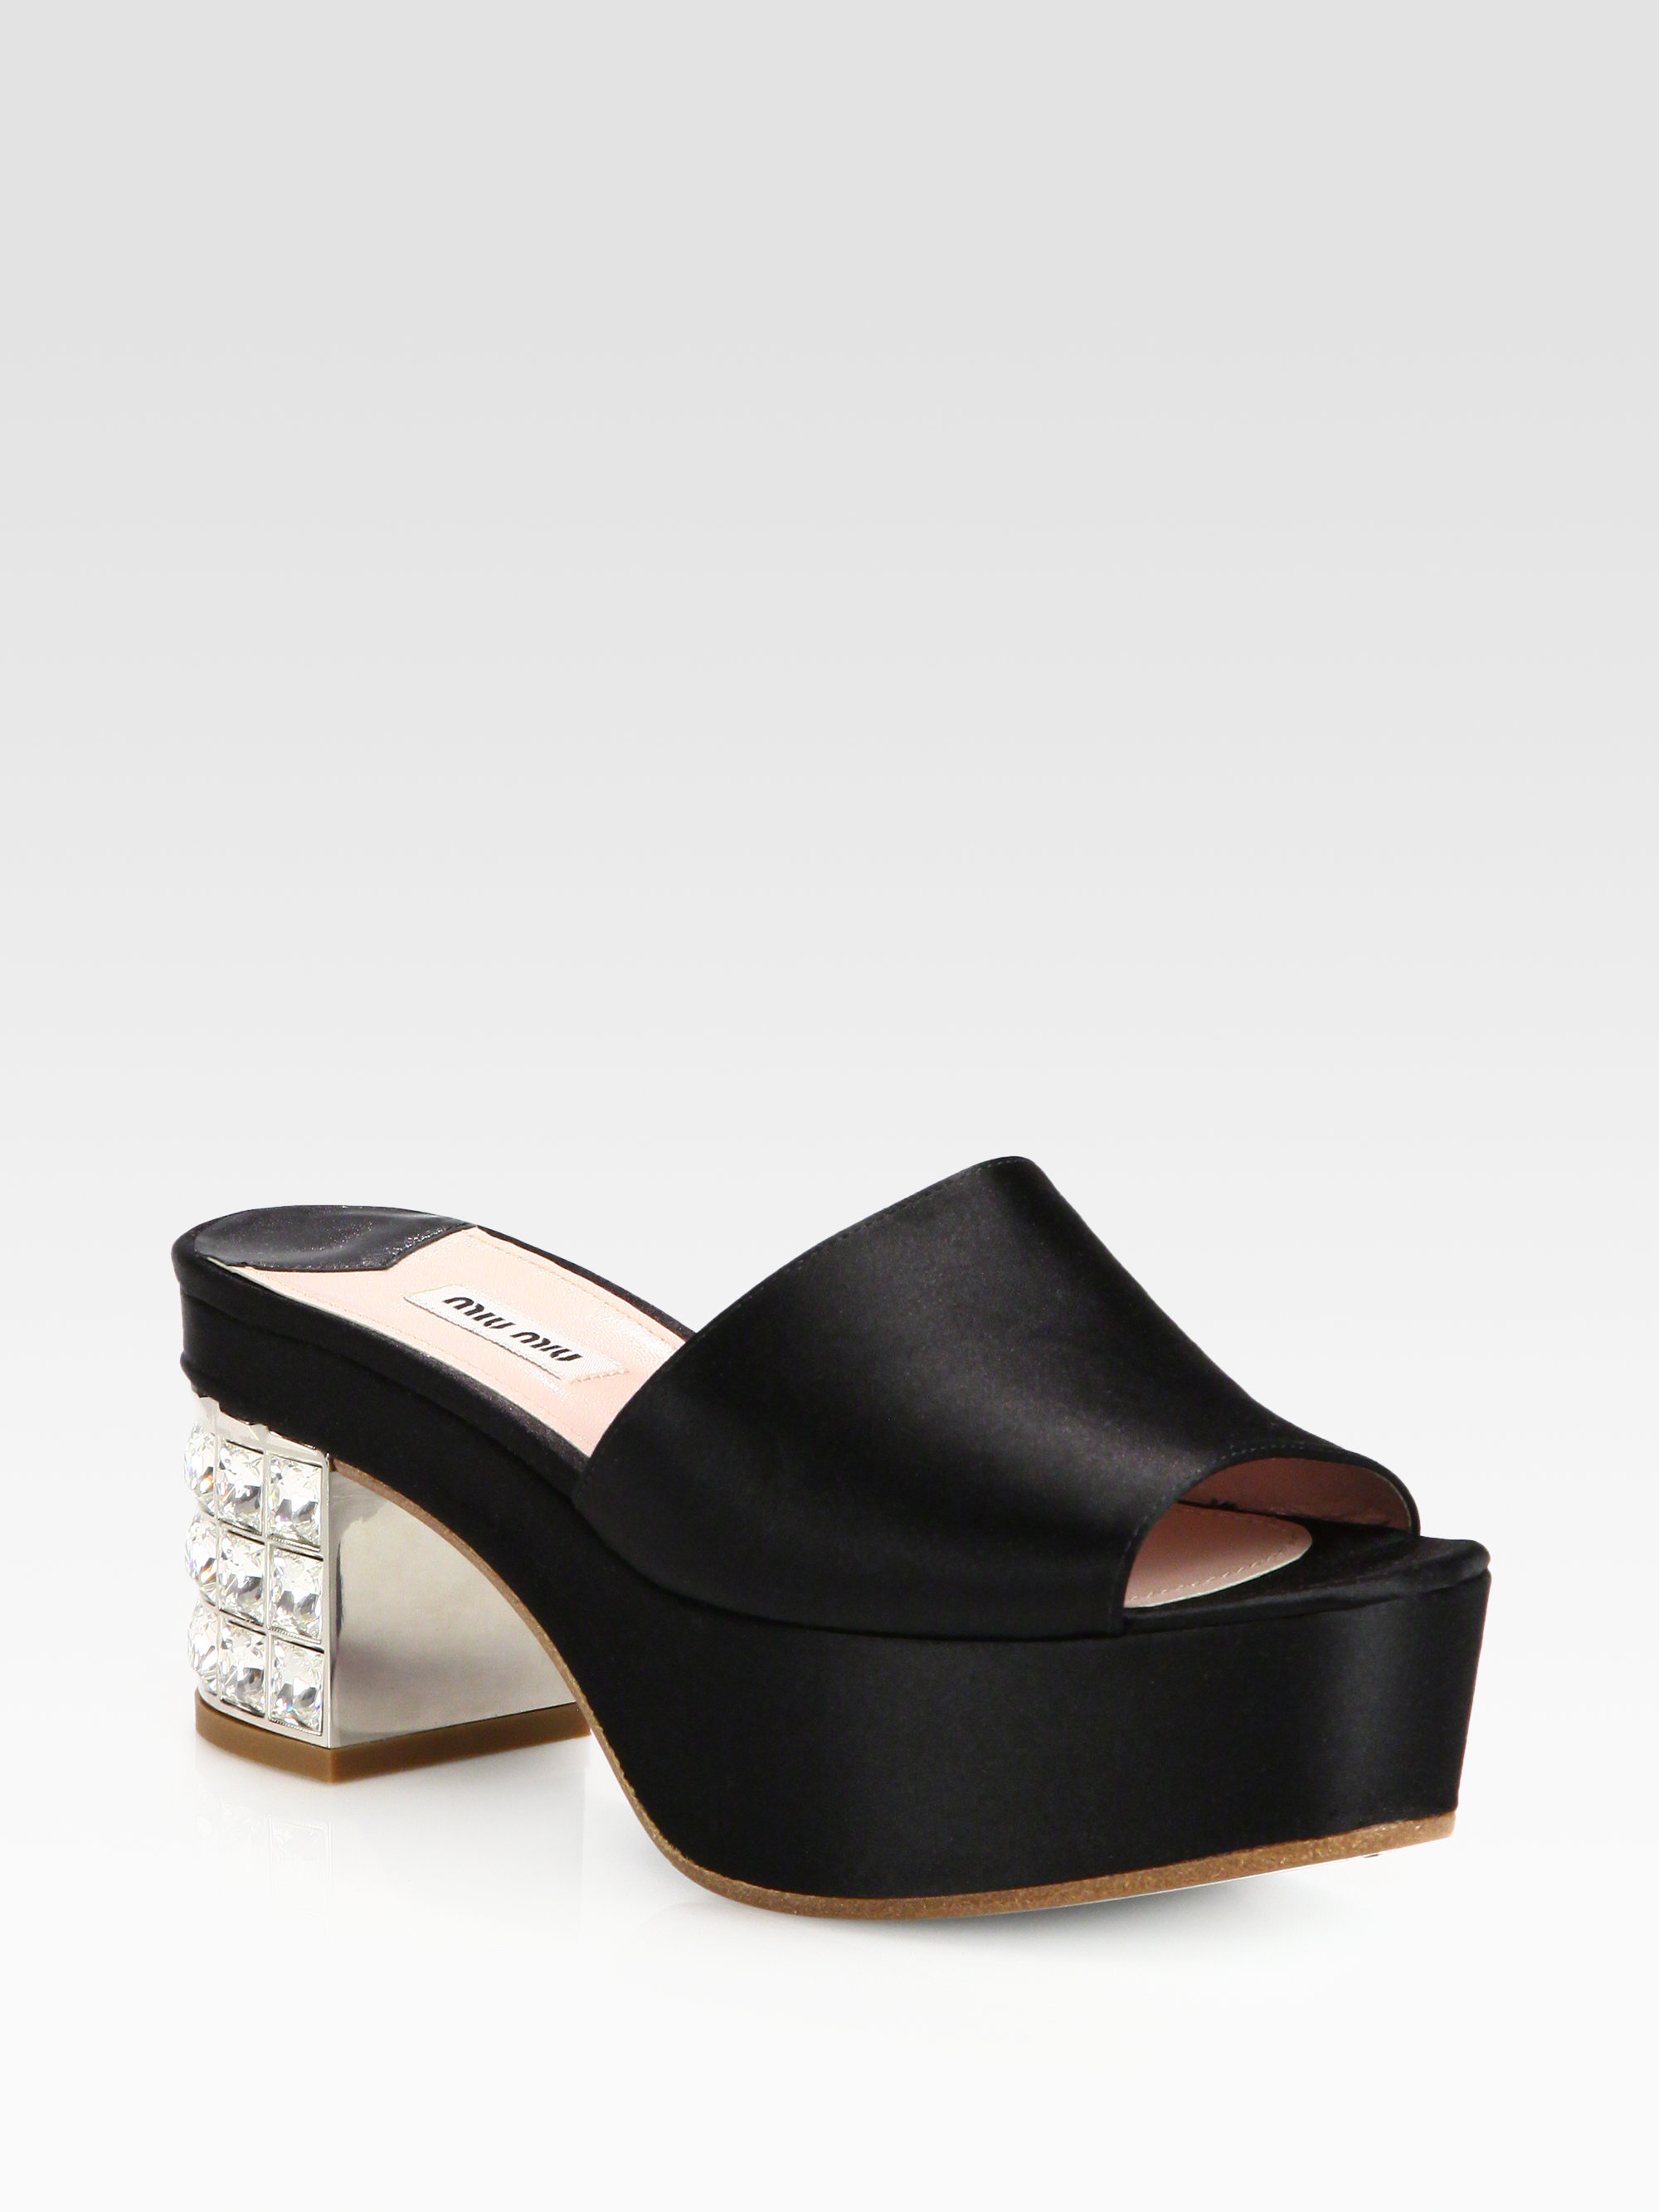 d6fc66149 Lyst - Miu Miu Satin Jeweled Heel Platform Mules in Black